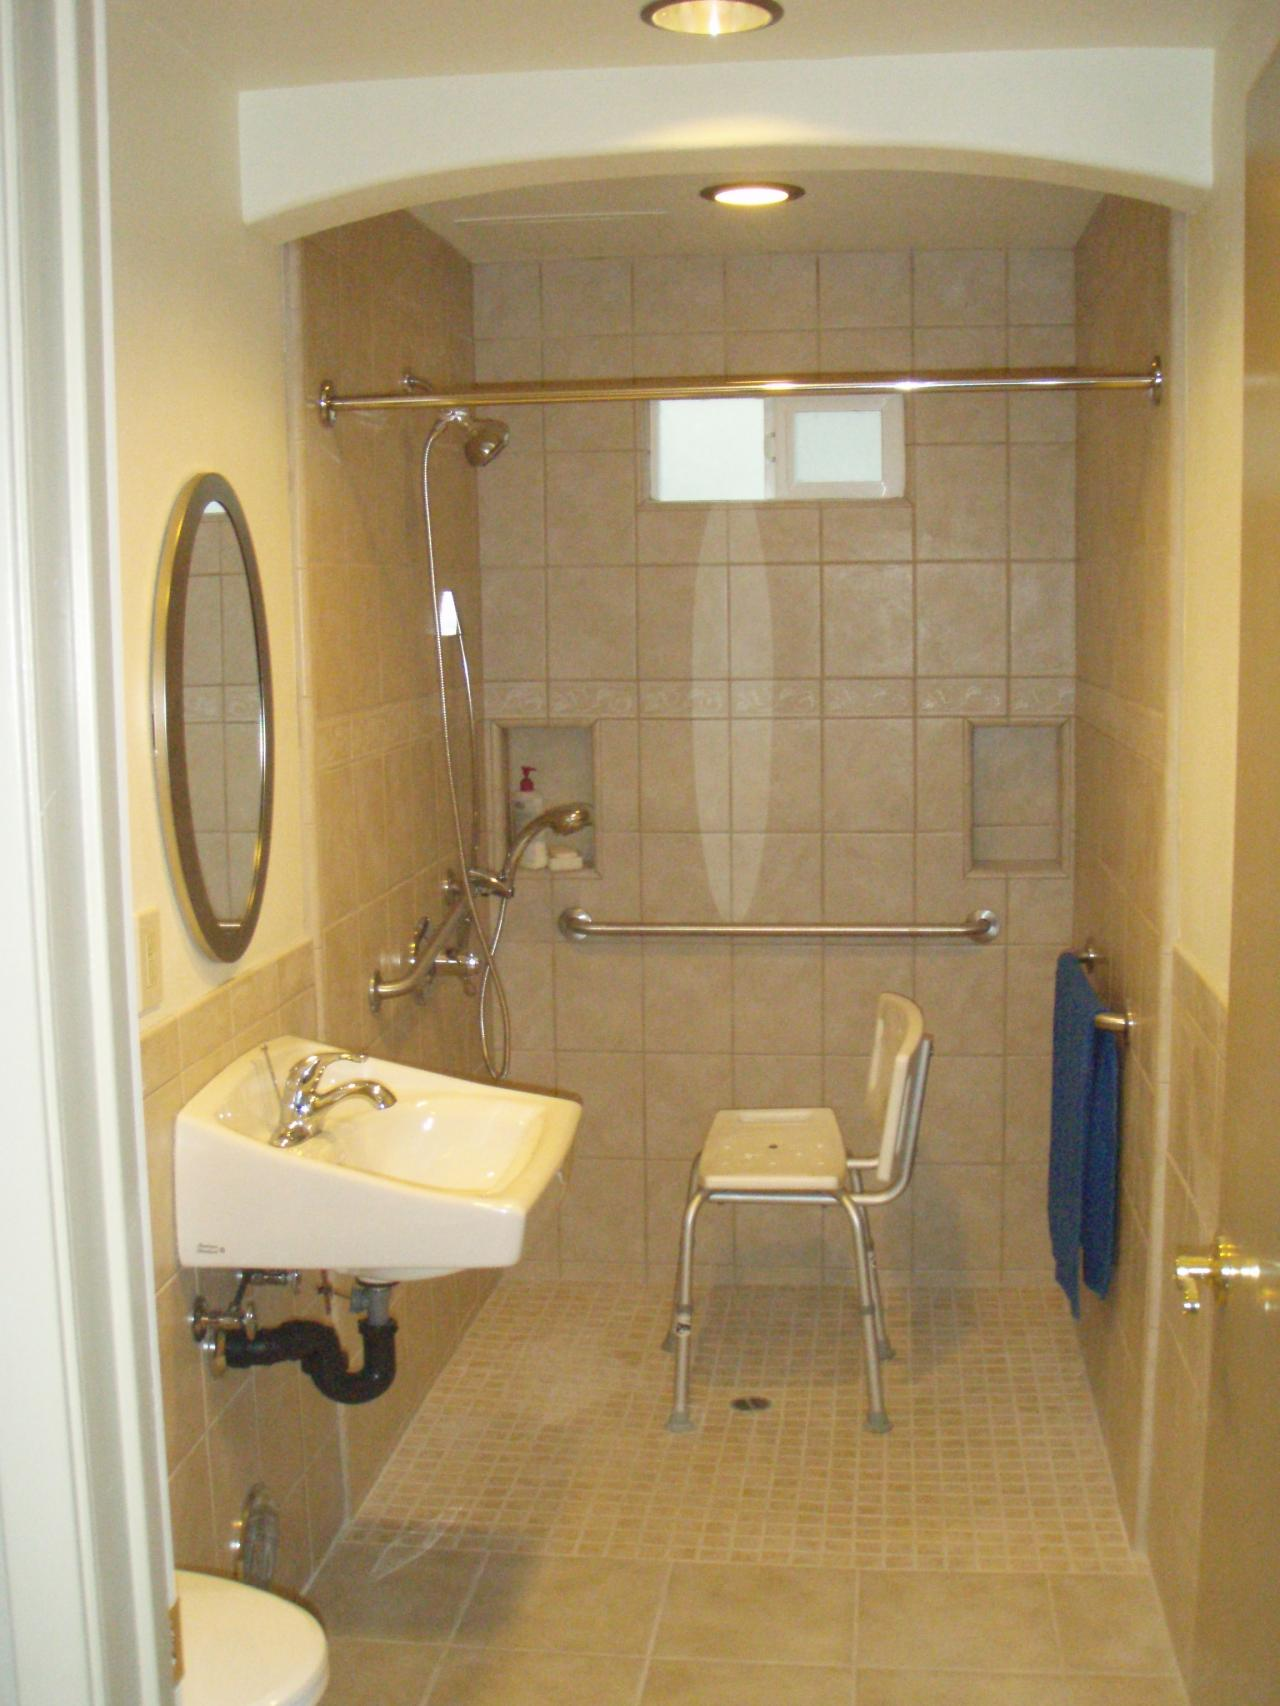 Bathroom Remodeling For Handicap Accessibility : Prodan construction handicapped bathroom ms hayashi